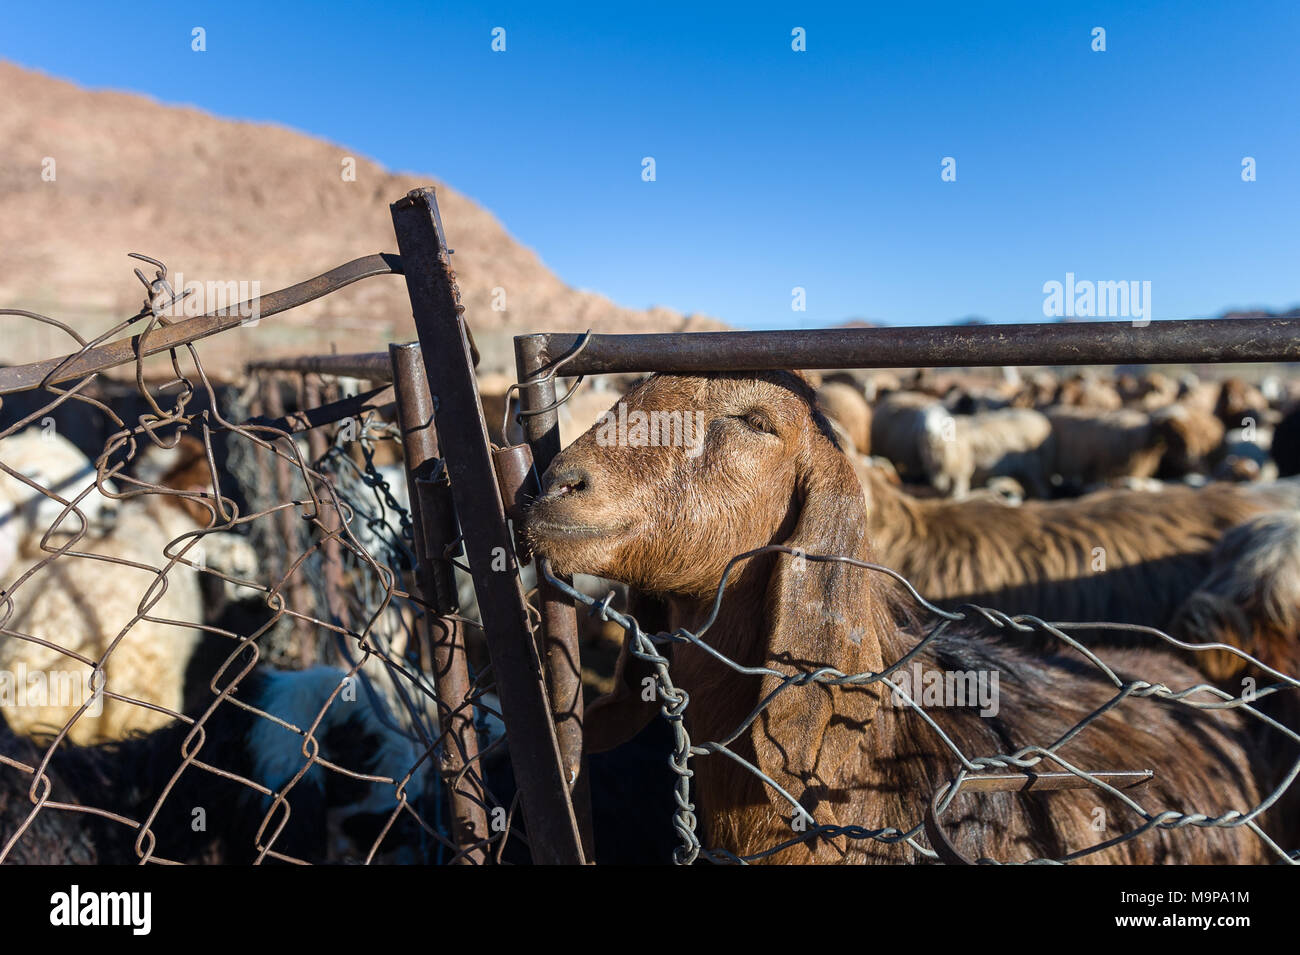 Stock breading of goat and sheep in the Wadi Rum. The Valley of the Moon, is a valley cut into the sandstone and granite rock in southern Jordan. - Stock Image